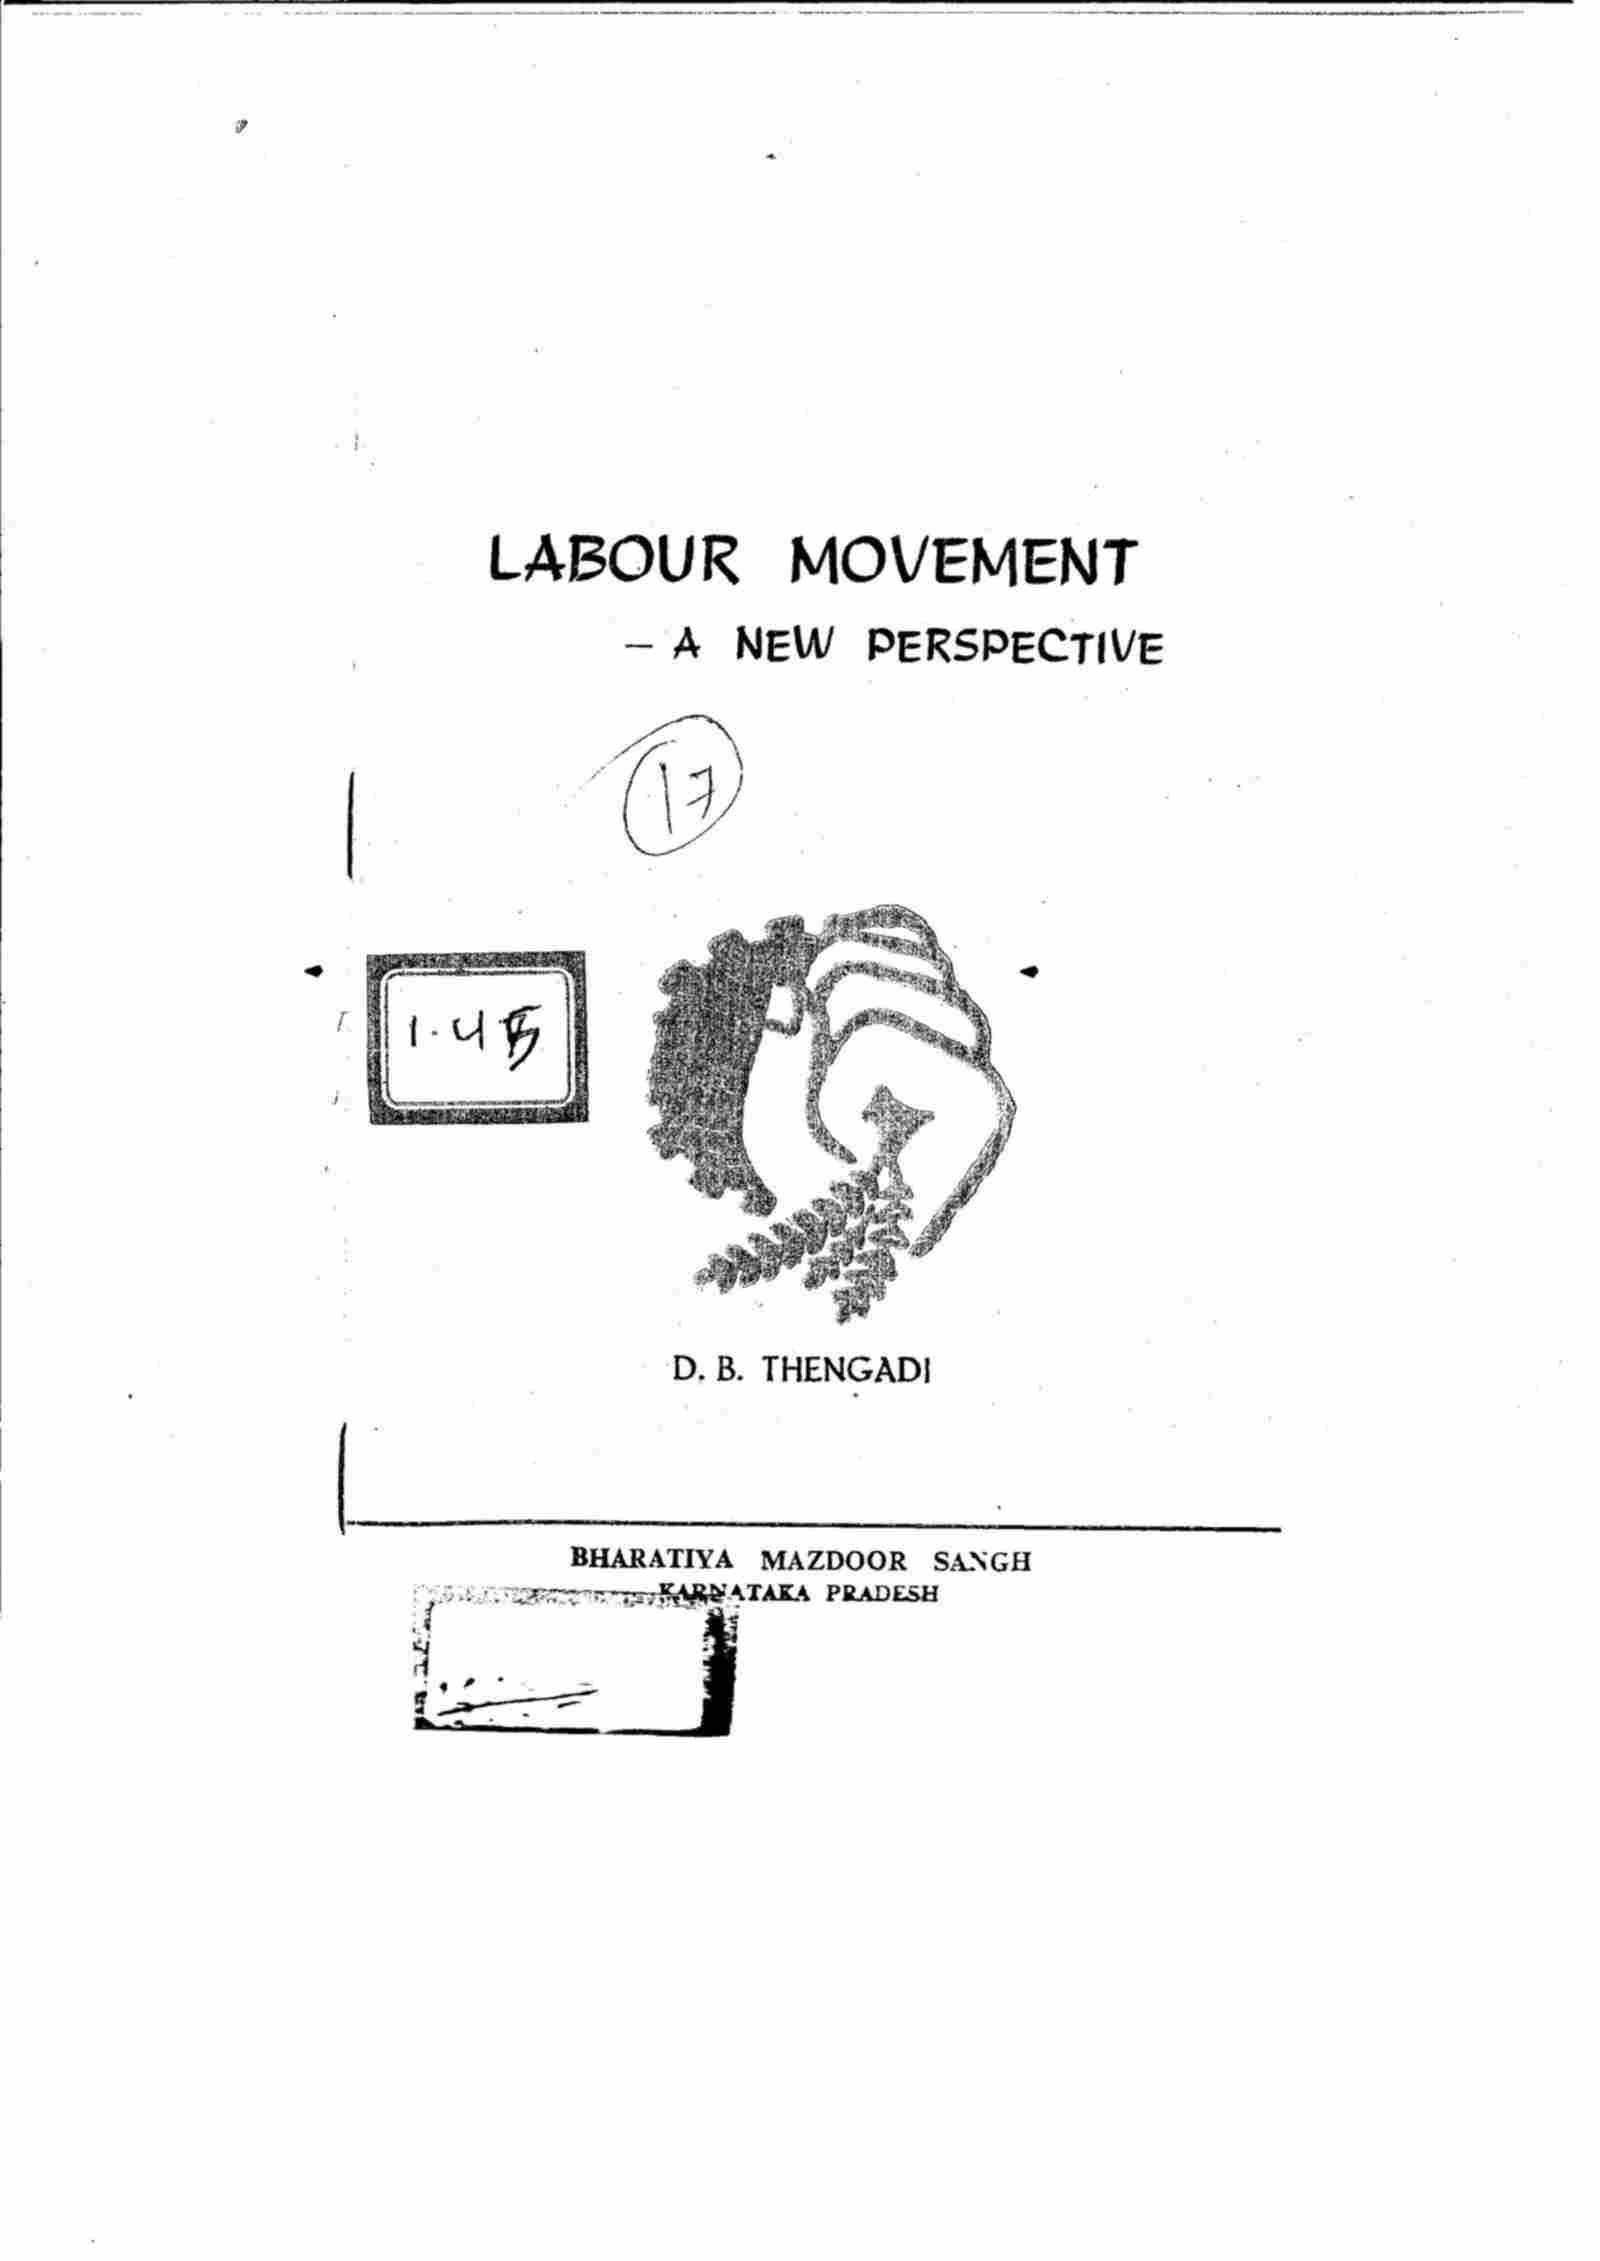 LABOUR MOVEMENT-A NEW PERSPECTIVE